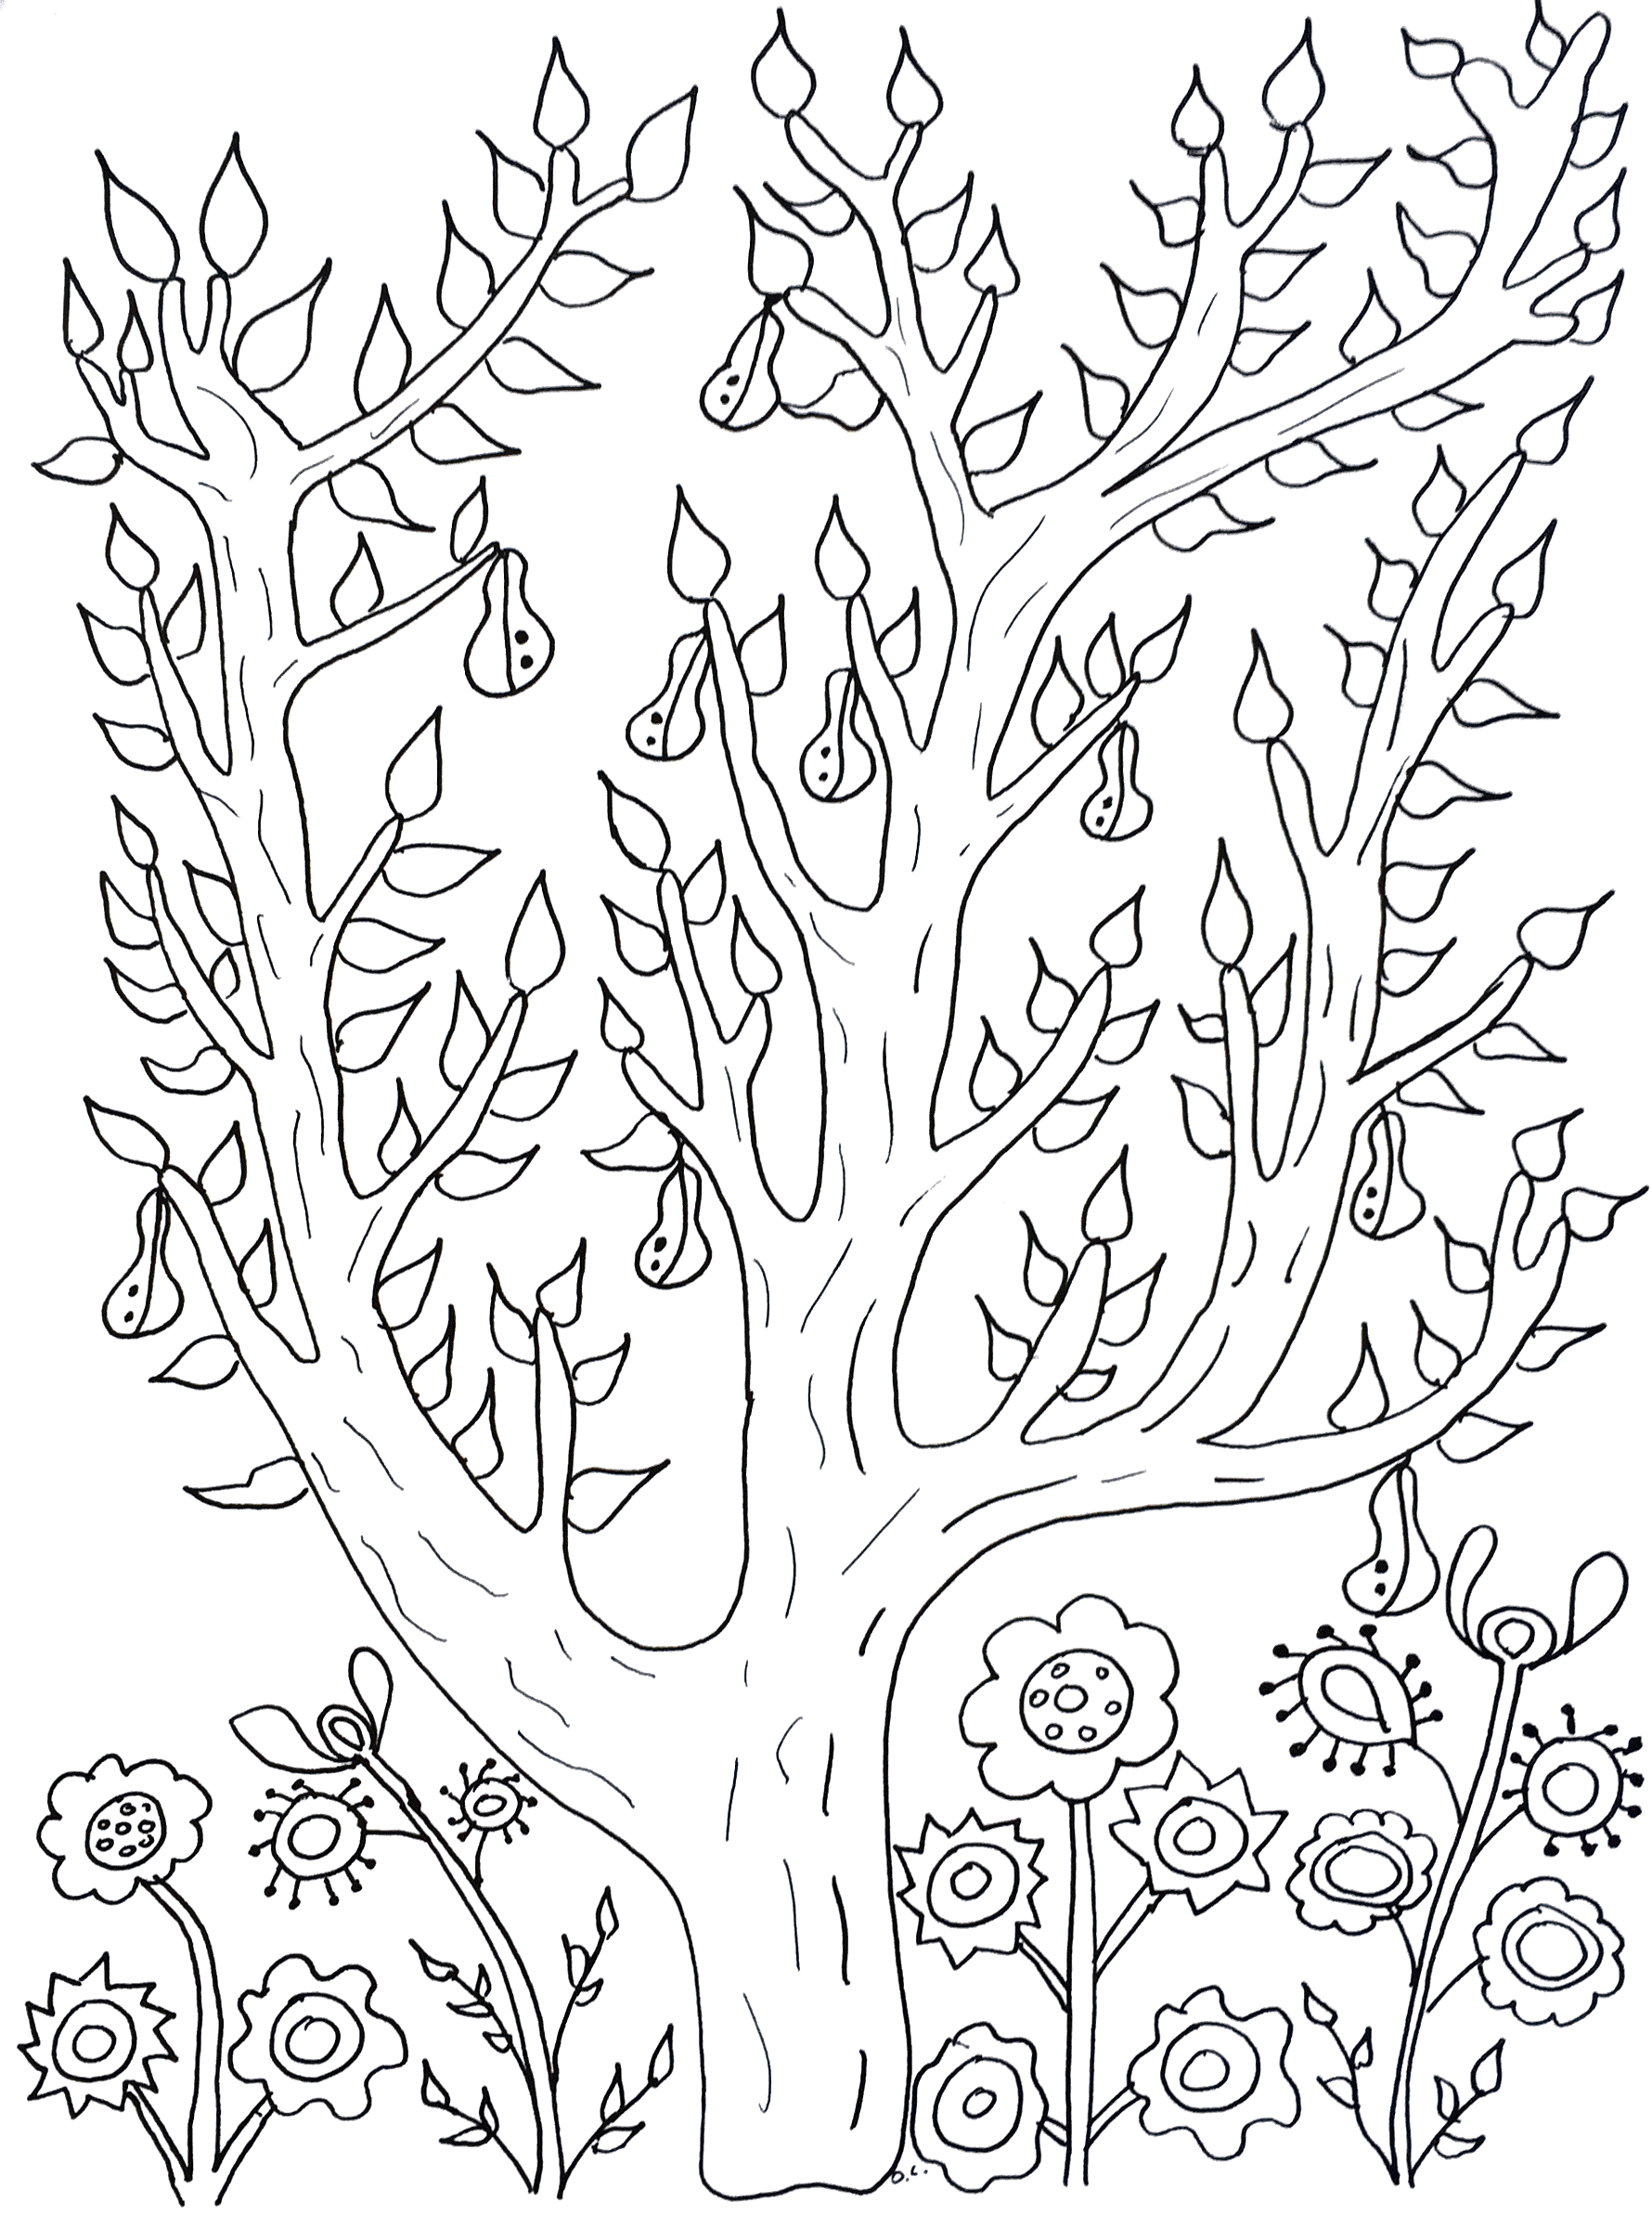 Coloring pages for adults tree - Cute Tree With Leaves And Pears From The Gallery Flowers And Vegetation Artist